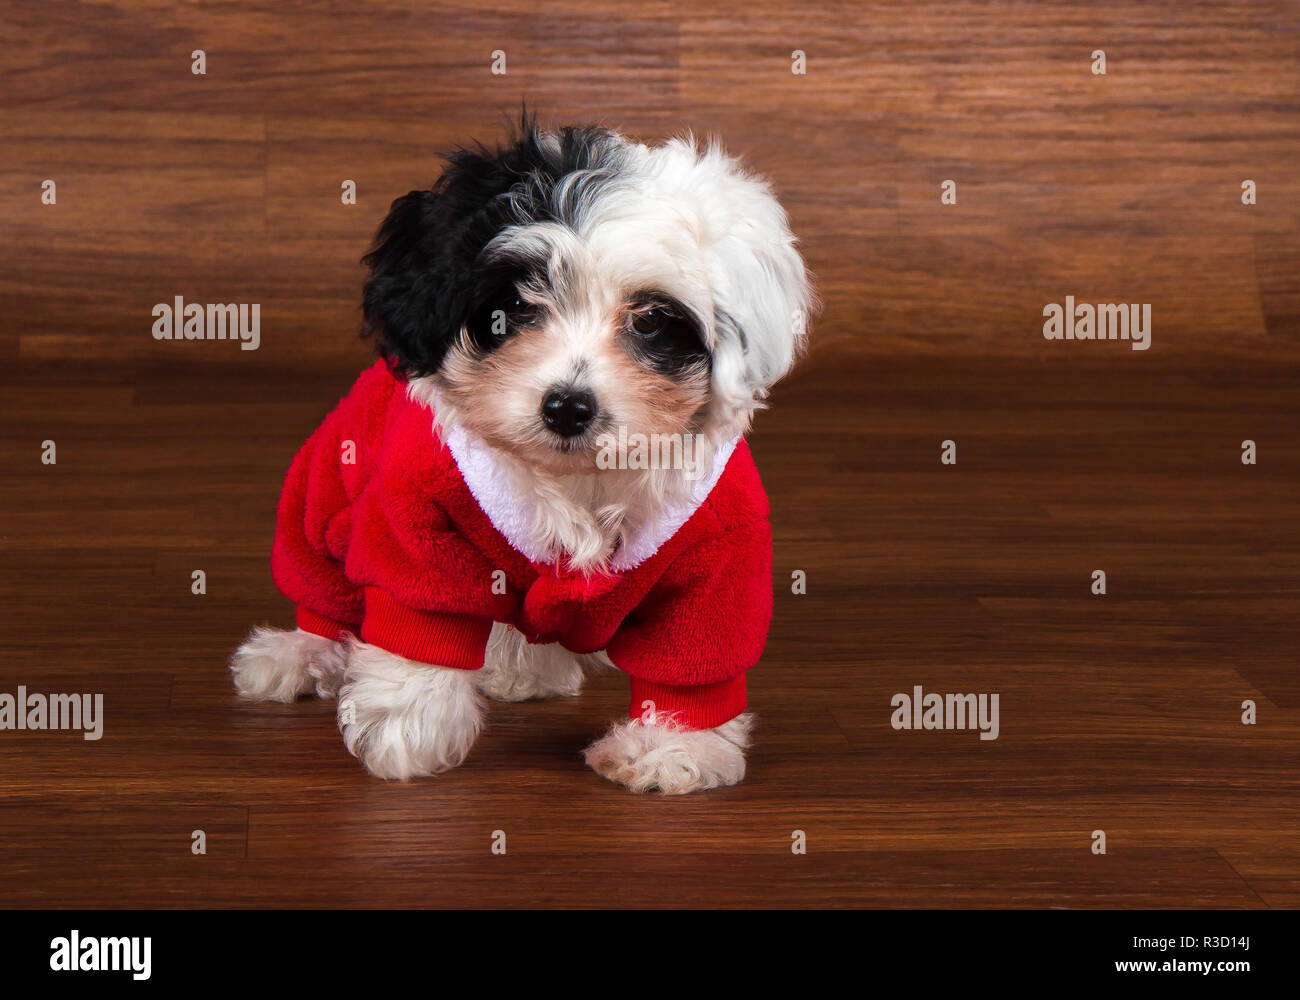 havanese puppy dog Stock Photo